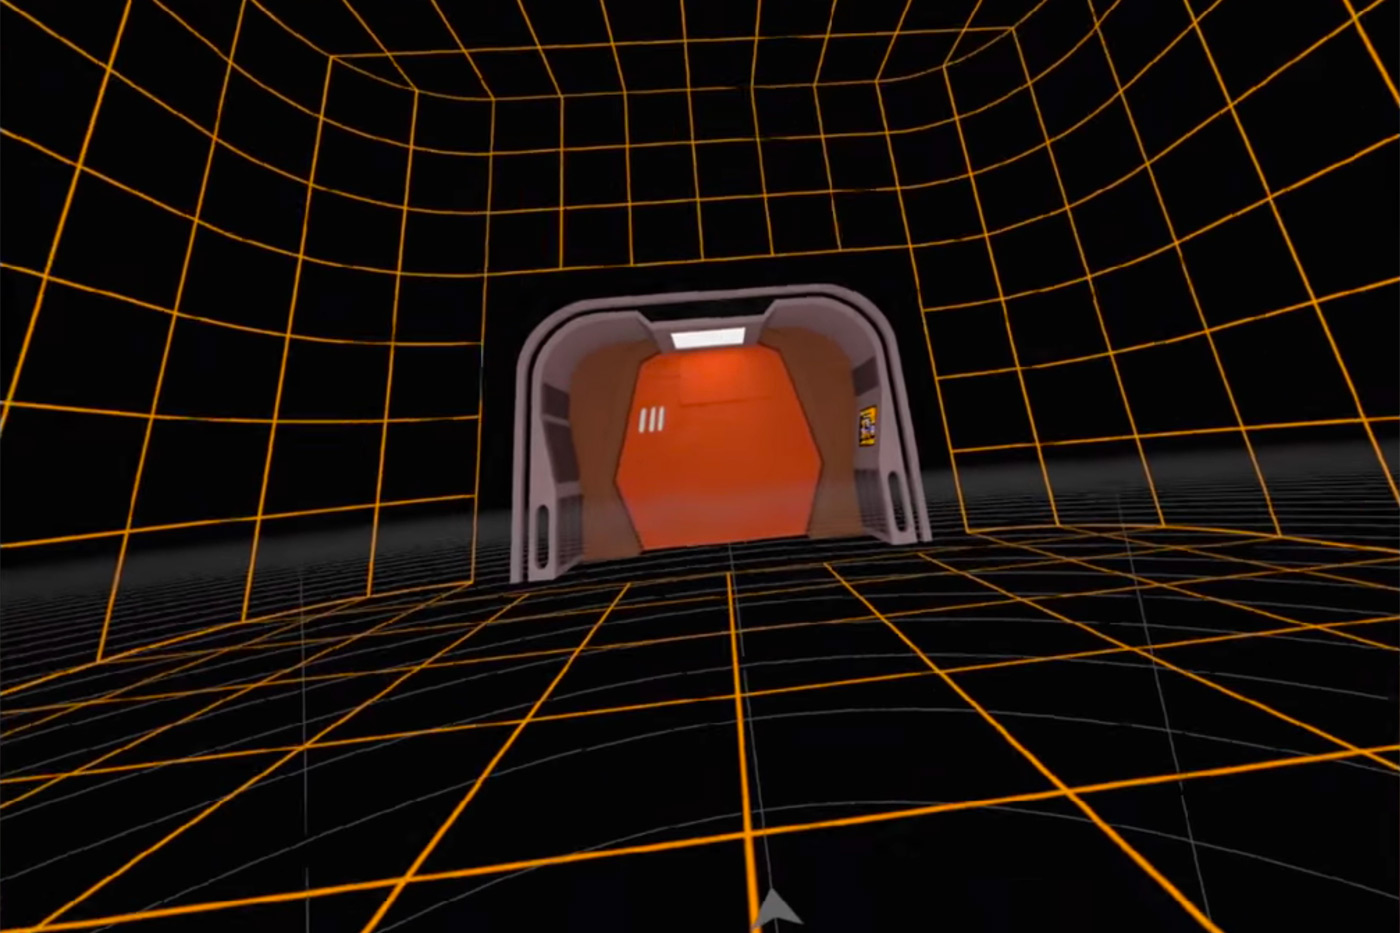 A 'Star Trek' Holodeck in Steam VR was inevitable